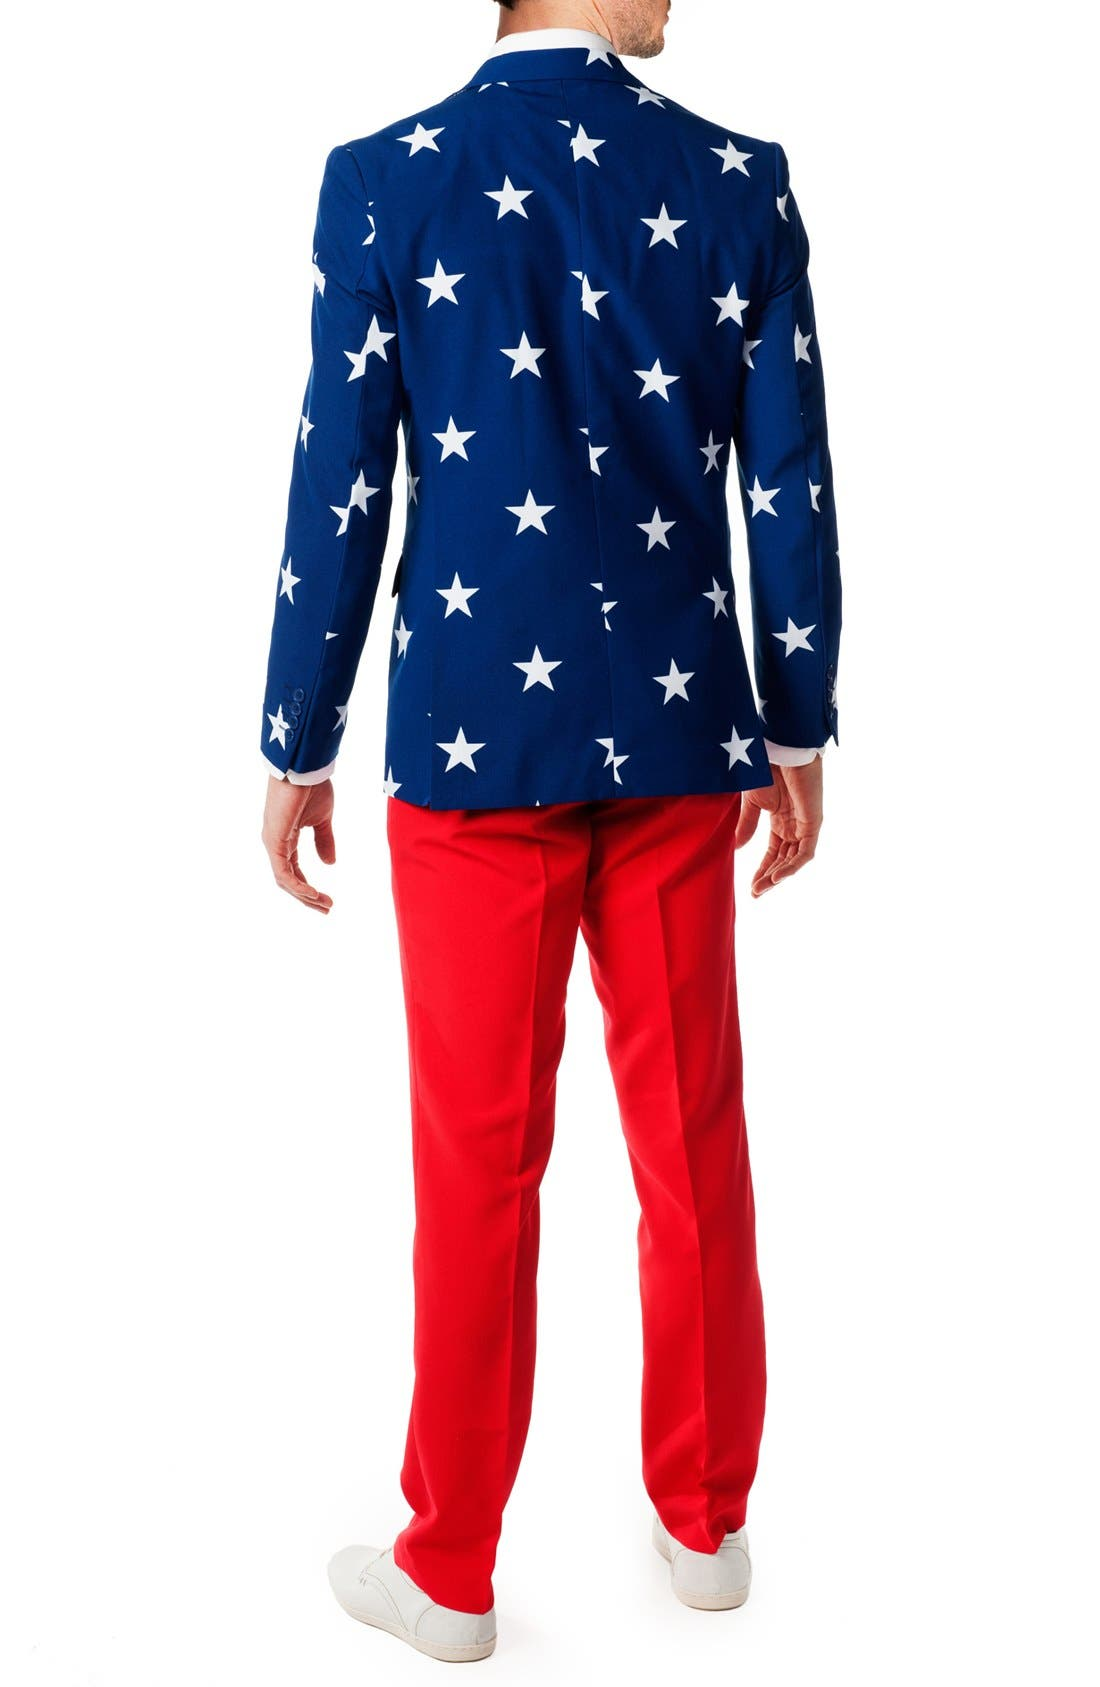 Alternate Image 2  - OppoSuits 'Stars & Stripes' Trim Fit Suit with Tie